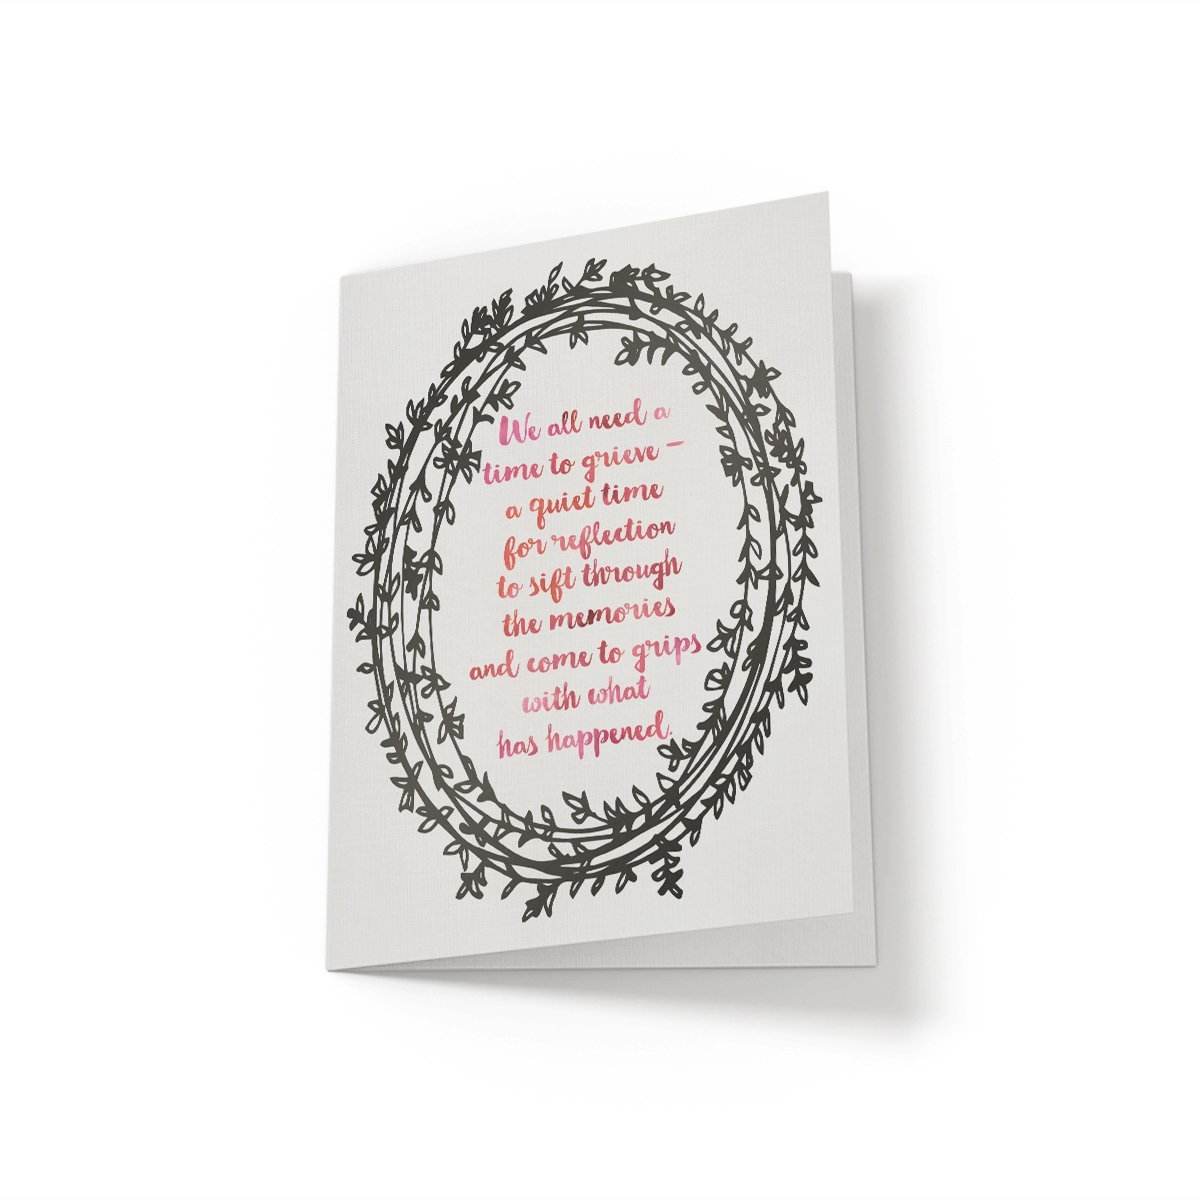 We all need a time to grieve - Greeting Card - Netties Expressions